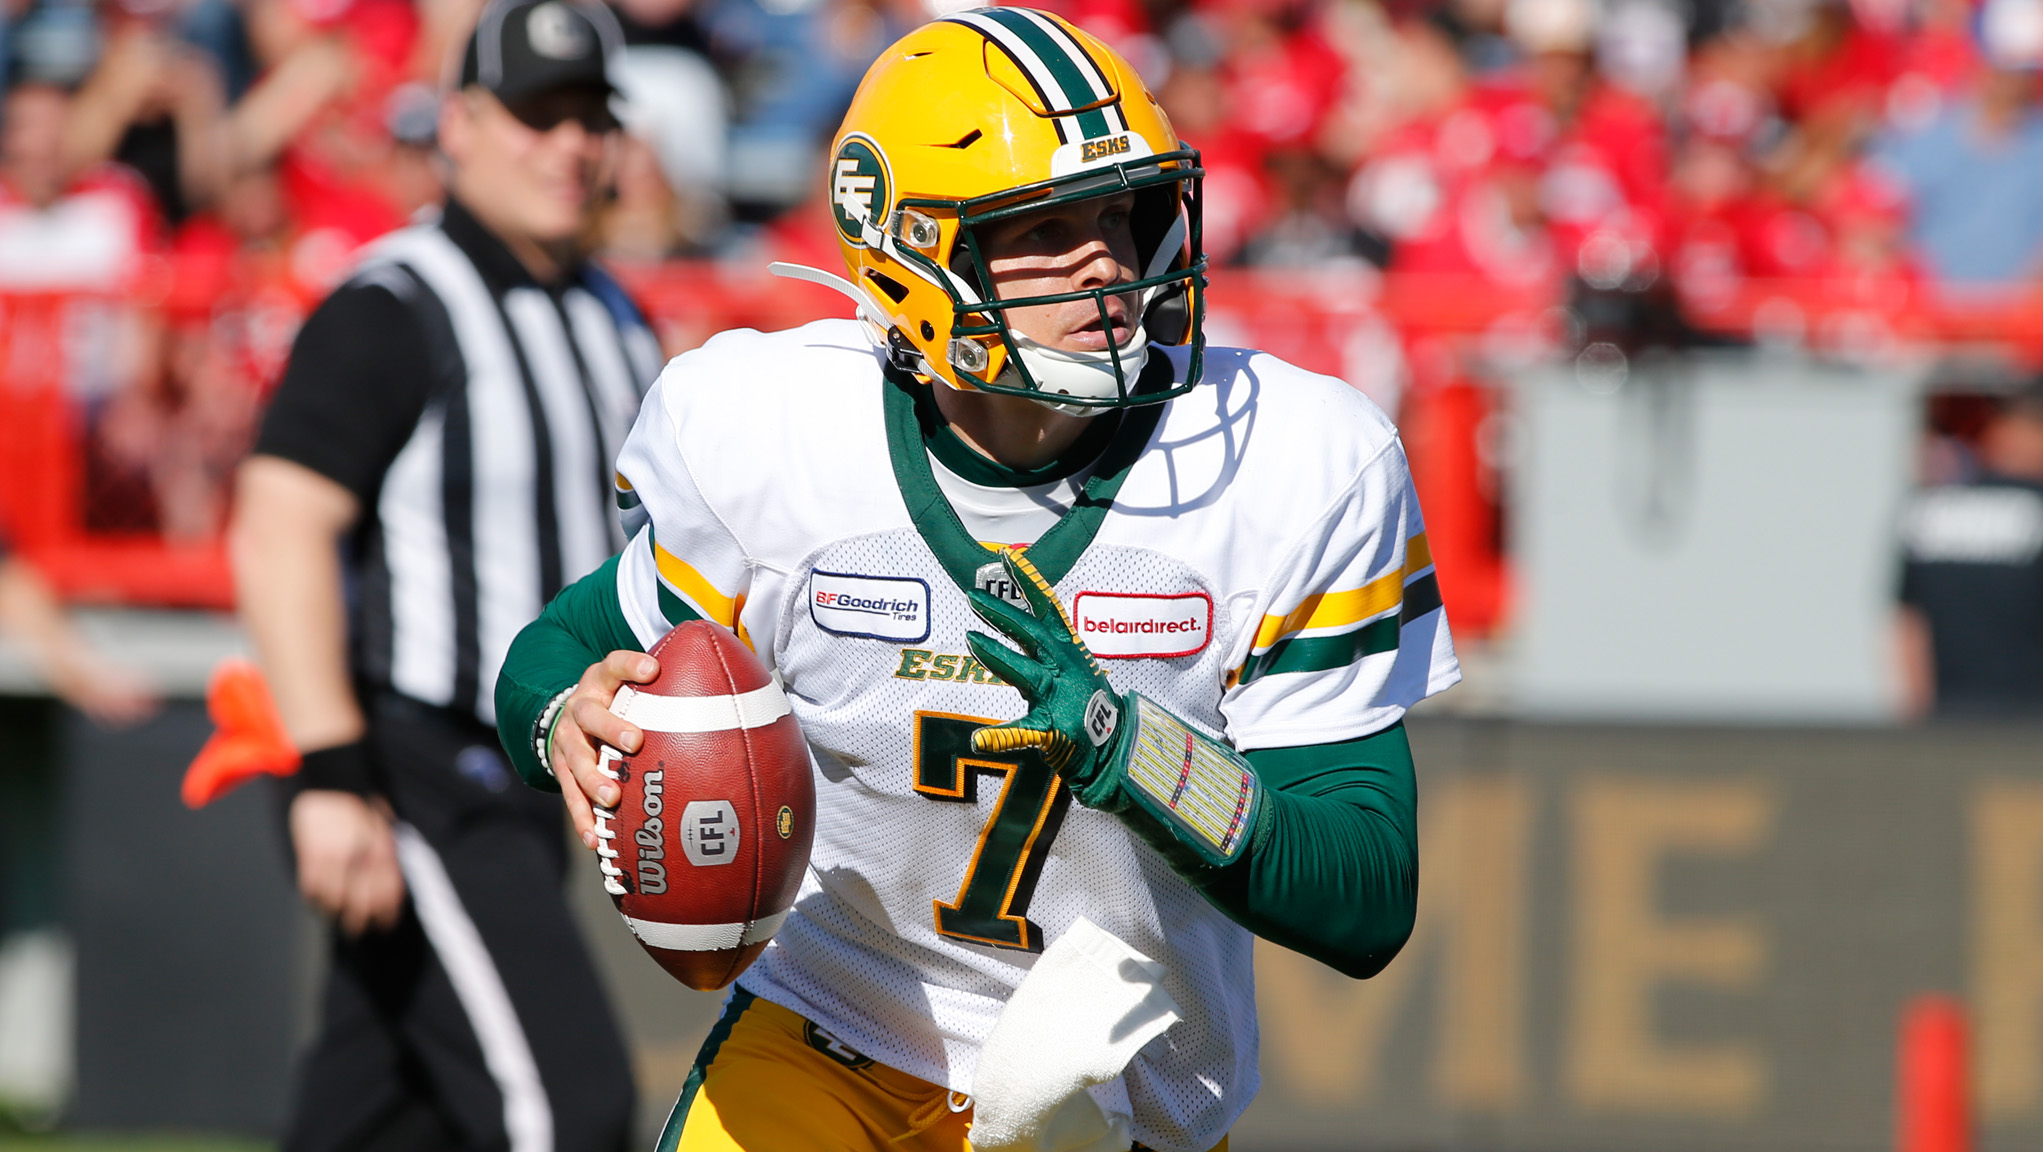 Harris, Esks focused on taking first half of back-to-back against Riders - CFL.ca